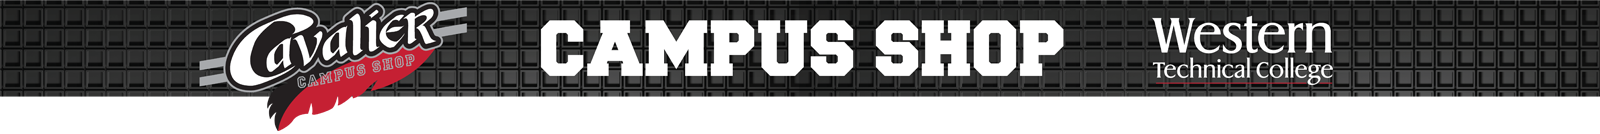 Western Campus Shop logo